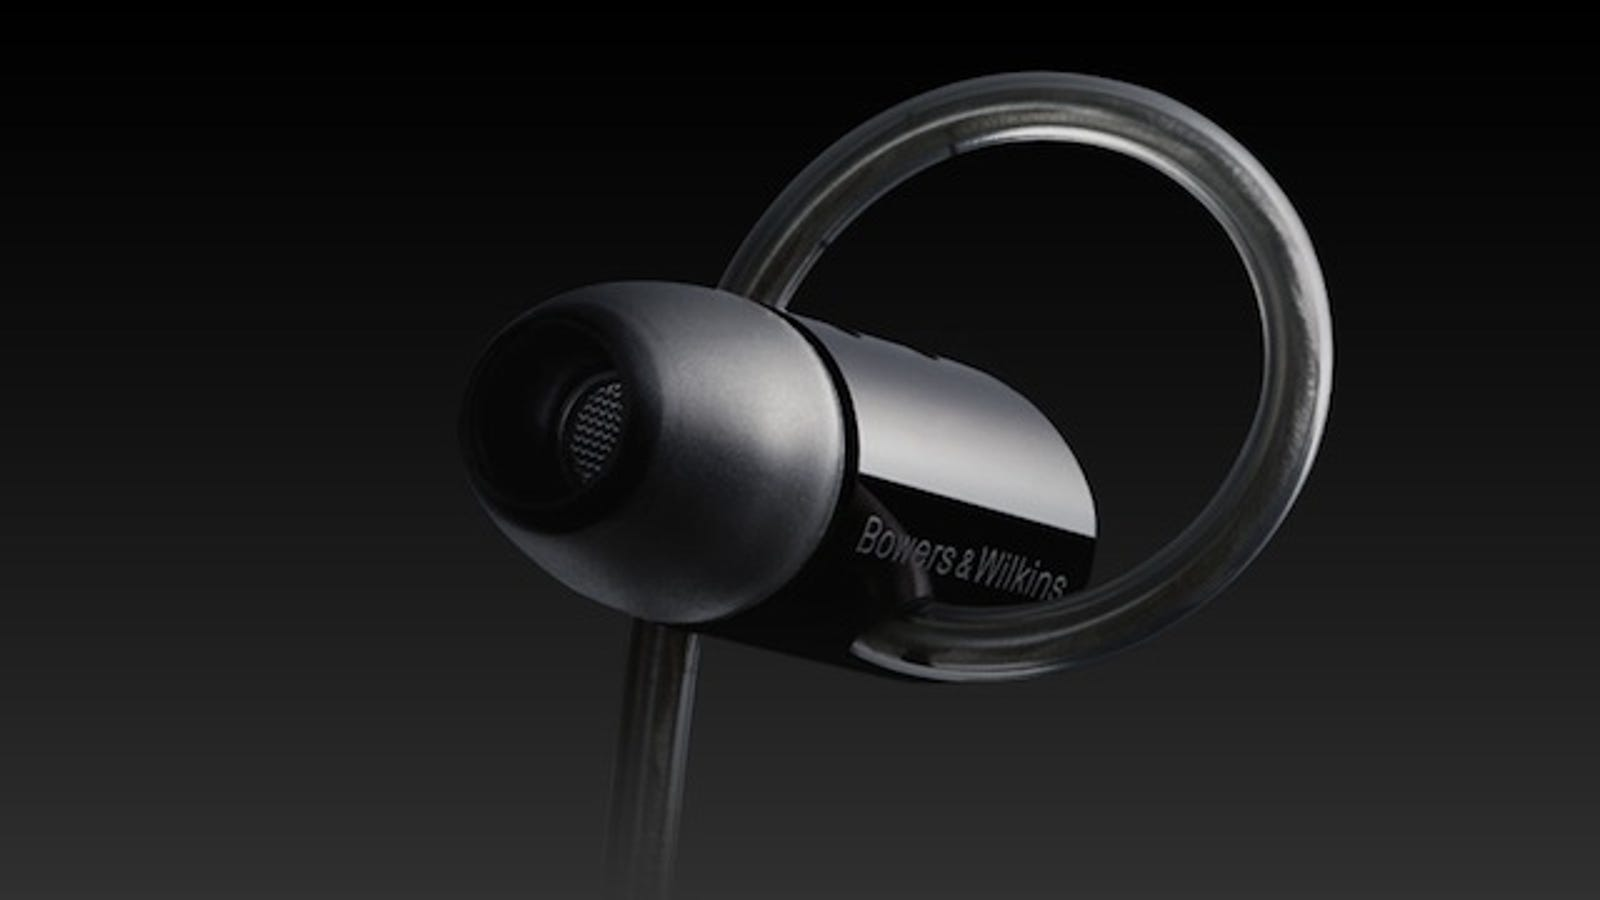 huawei mate 10 pro earphone - Bowers & Wilkins C5 Headphones Will Probably Actually Stay on Your Head